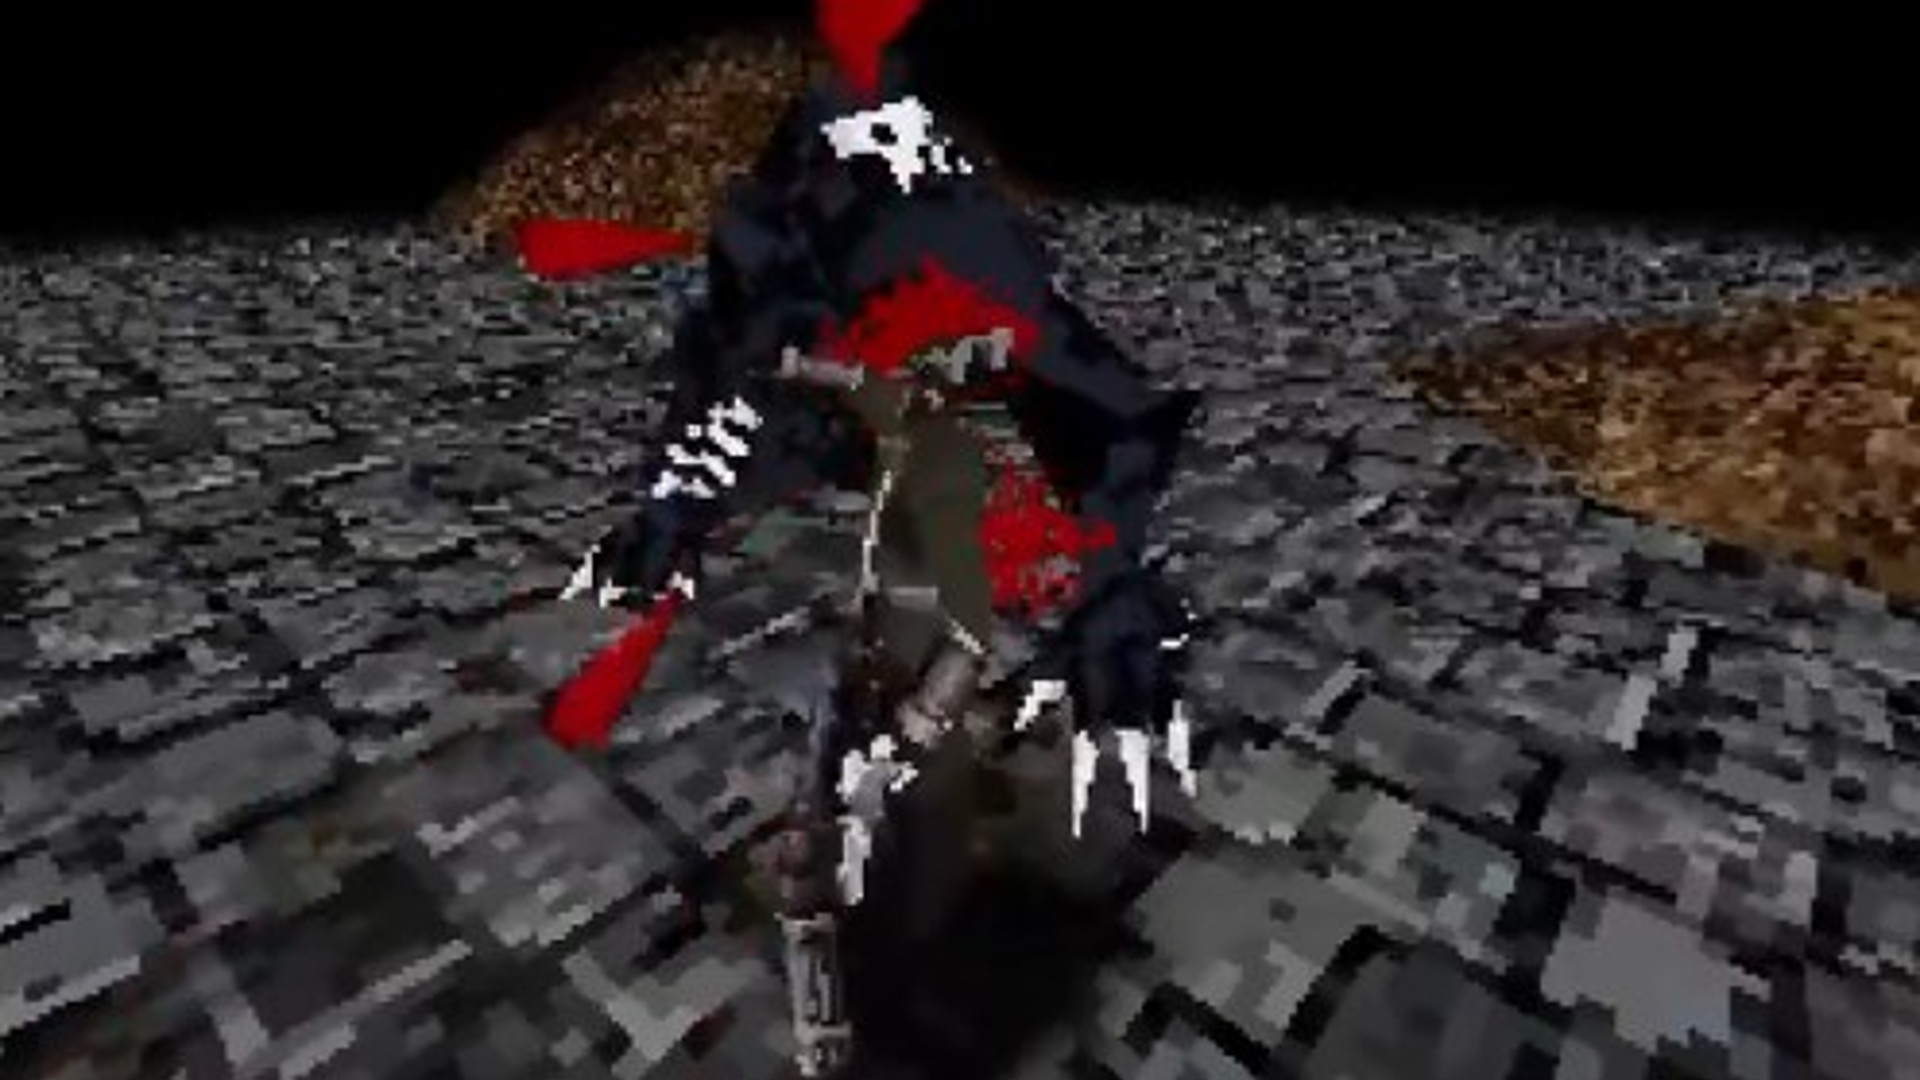 Bloodborne's being remade as a PS1 game